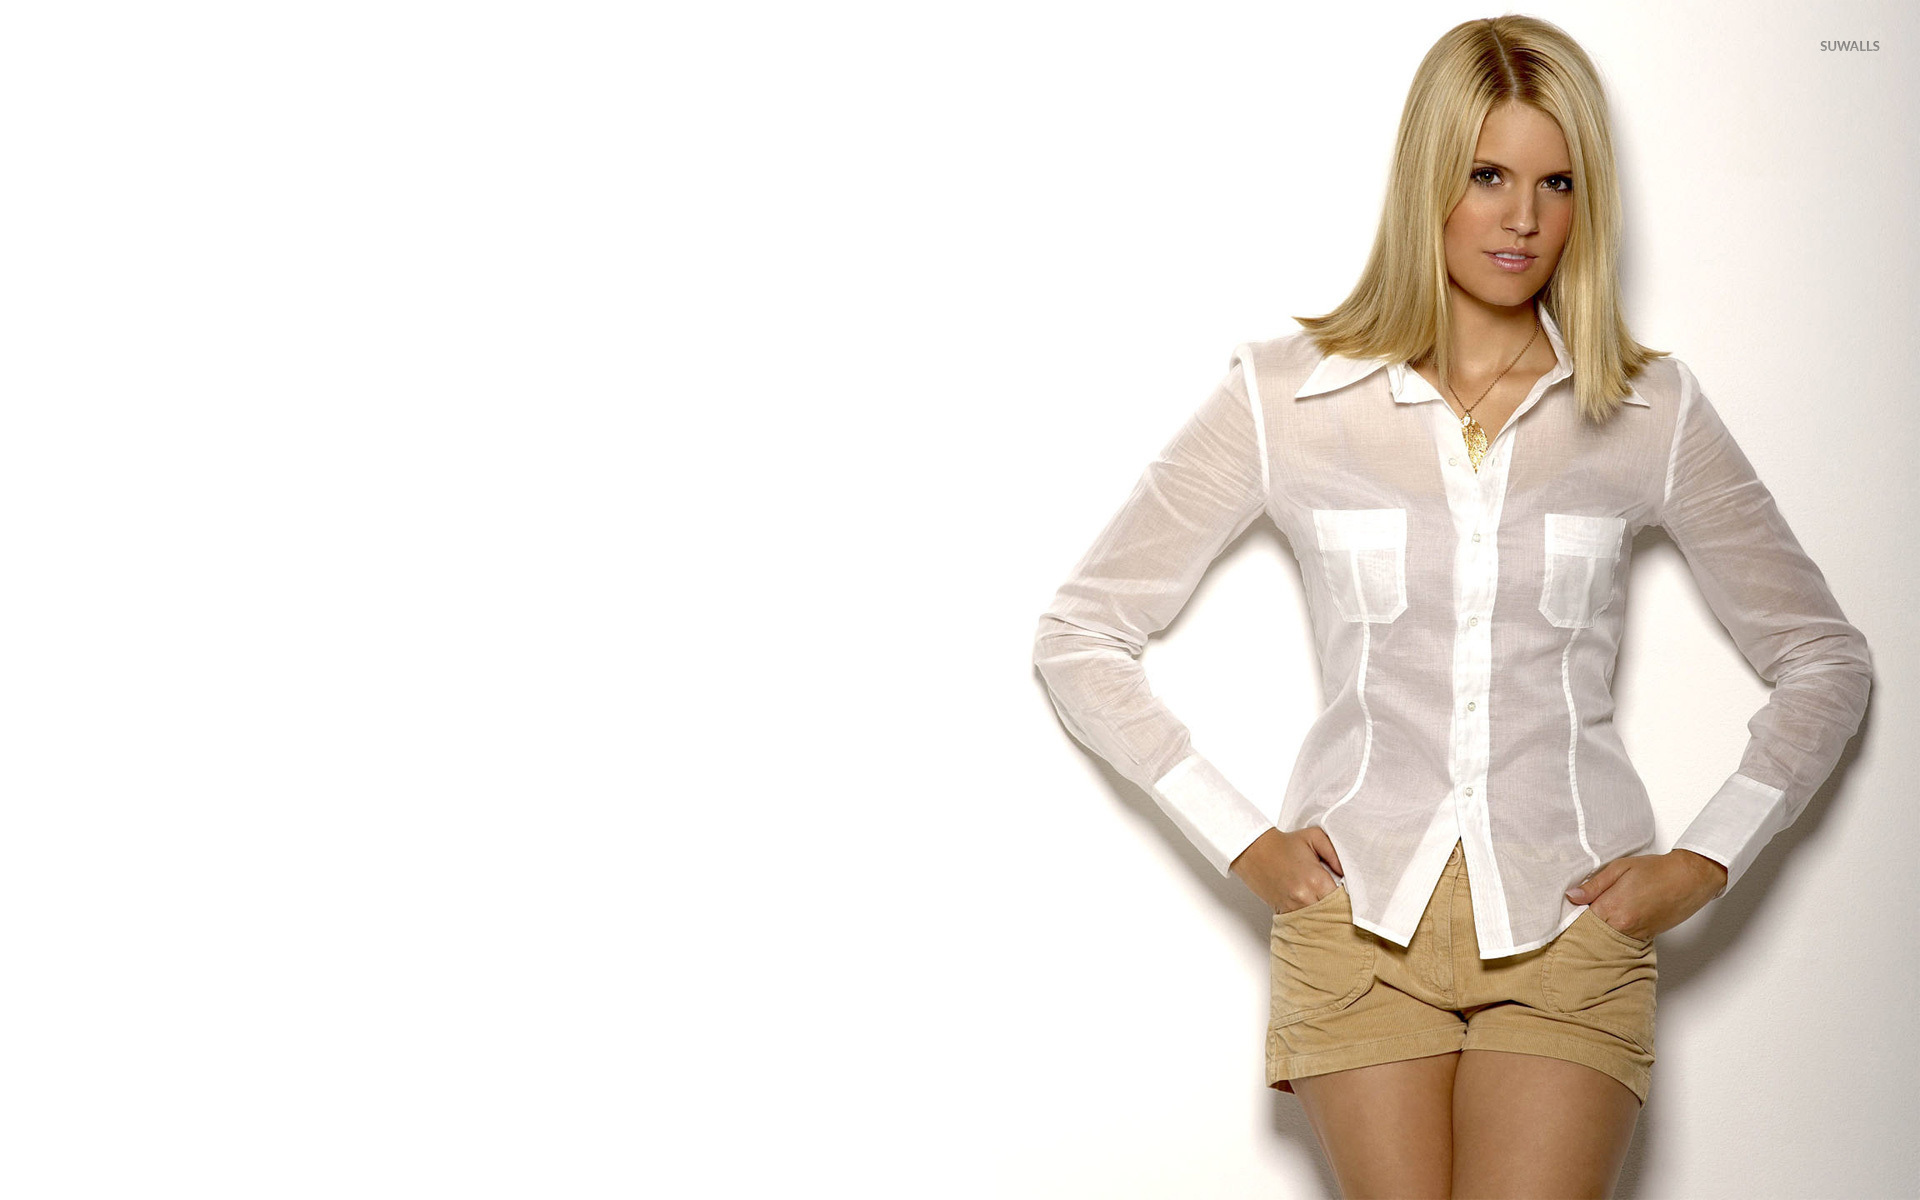 1920x1200 - Maggie Grace Wallpapers 29